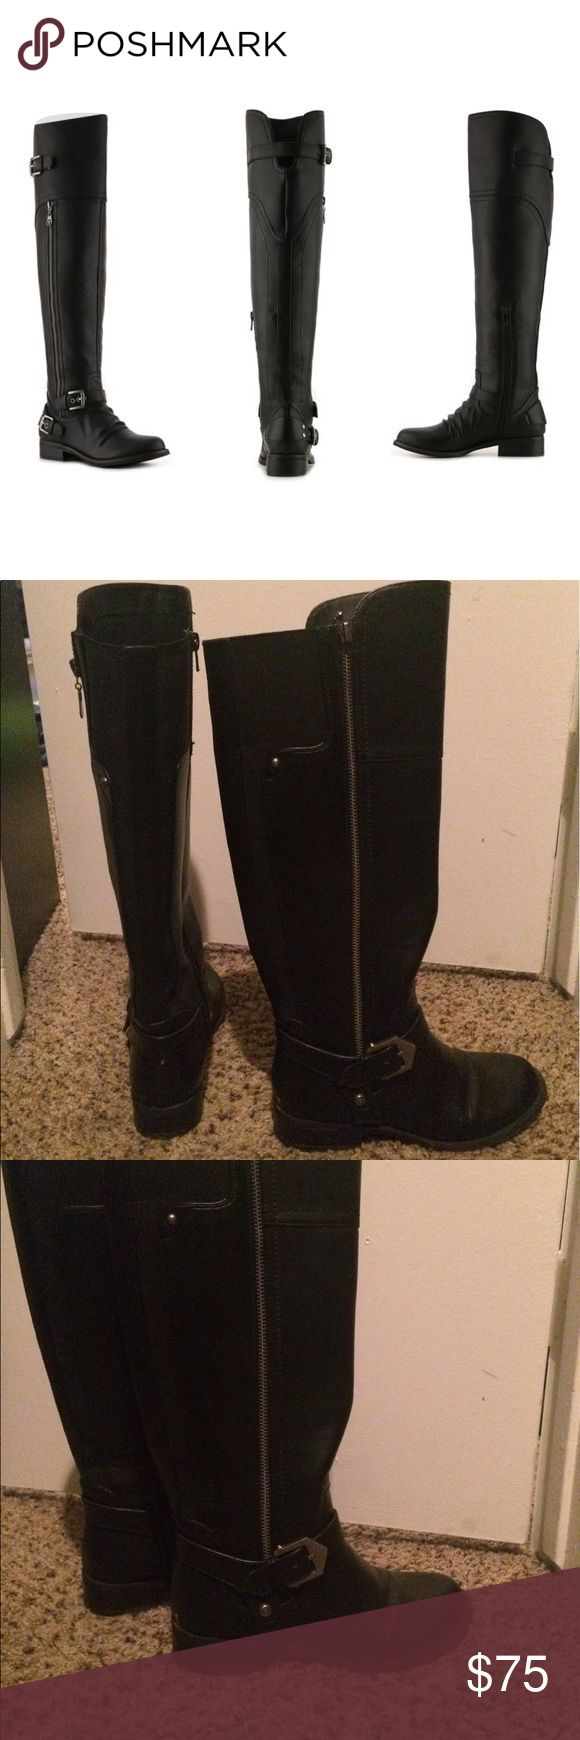 Flat Knee High Boots by GUESS Brand new guess boots. Not even broken in yet. Too small for me. Great condition. More picture upon request. Guess Shoes Over the Knee Boots